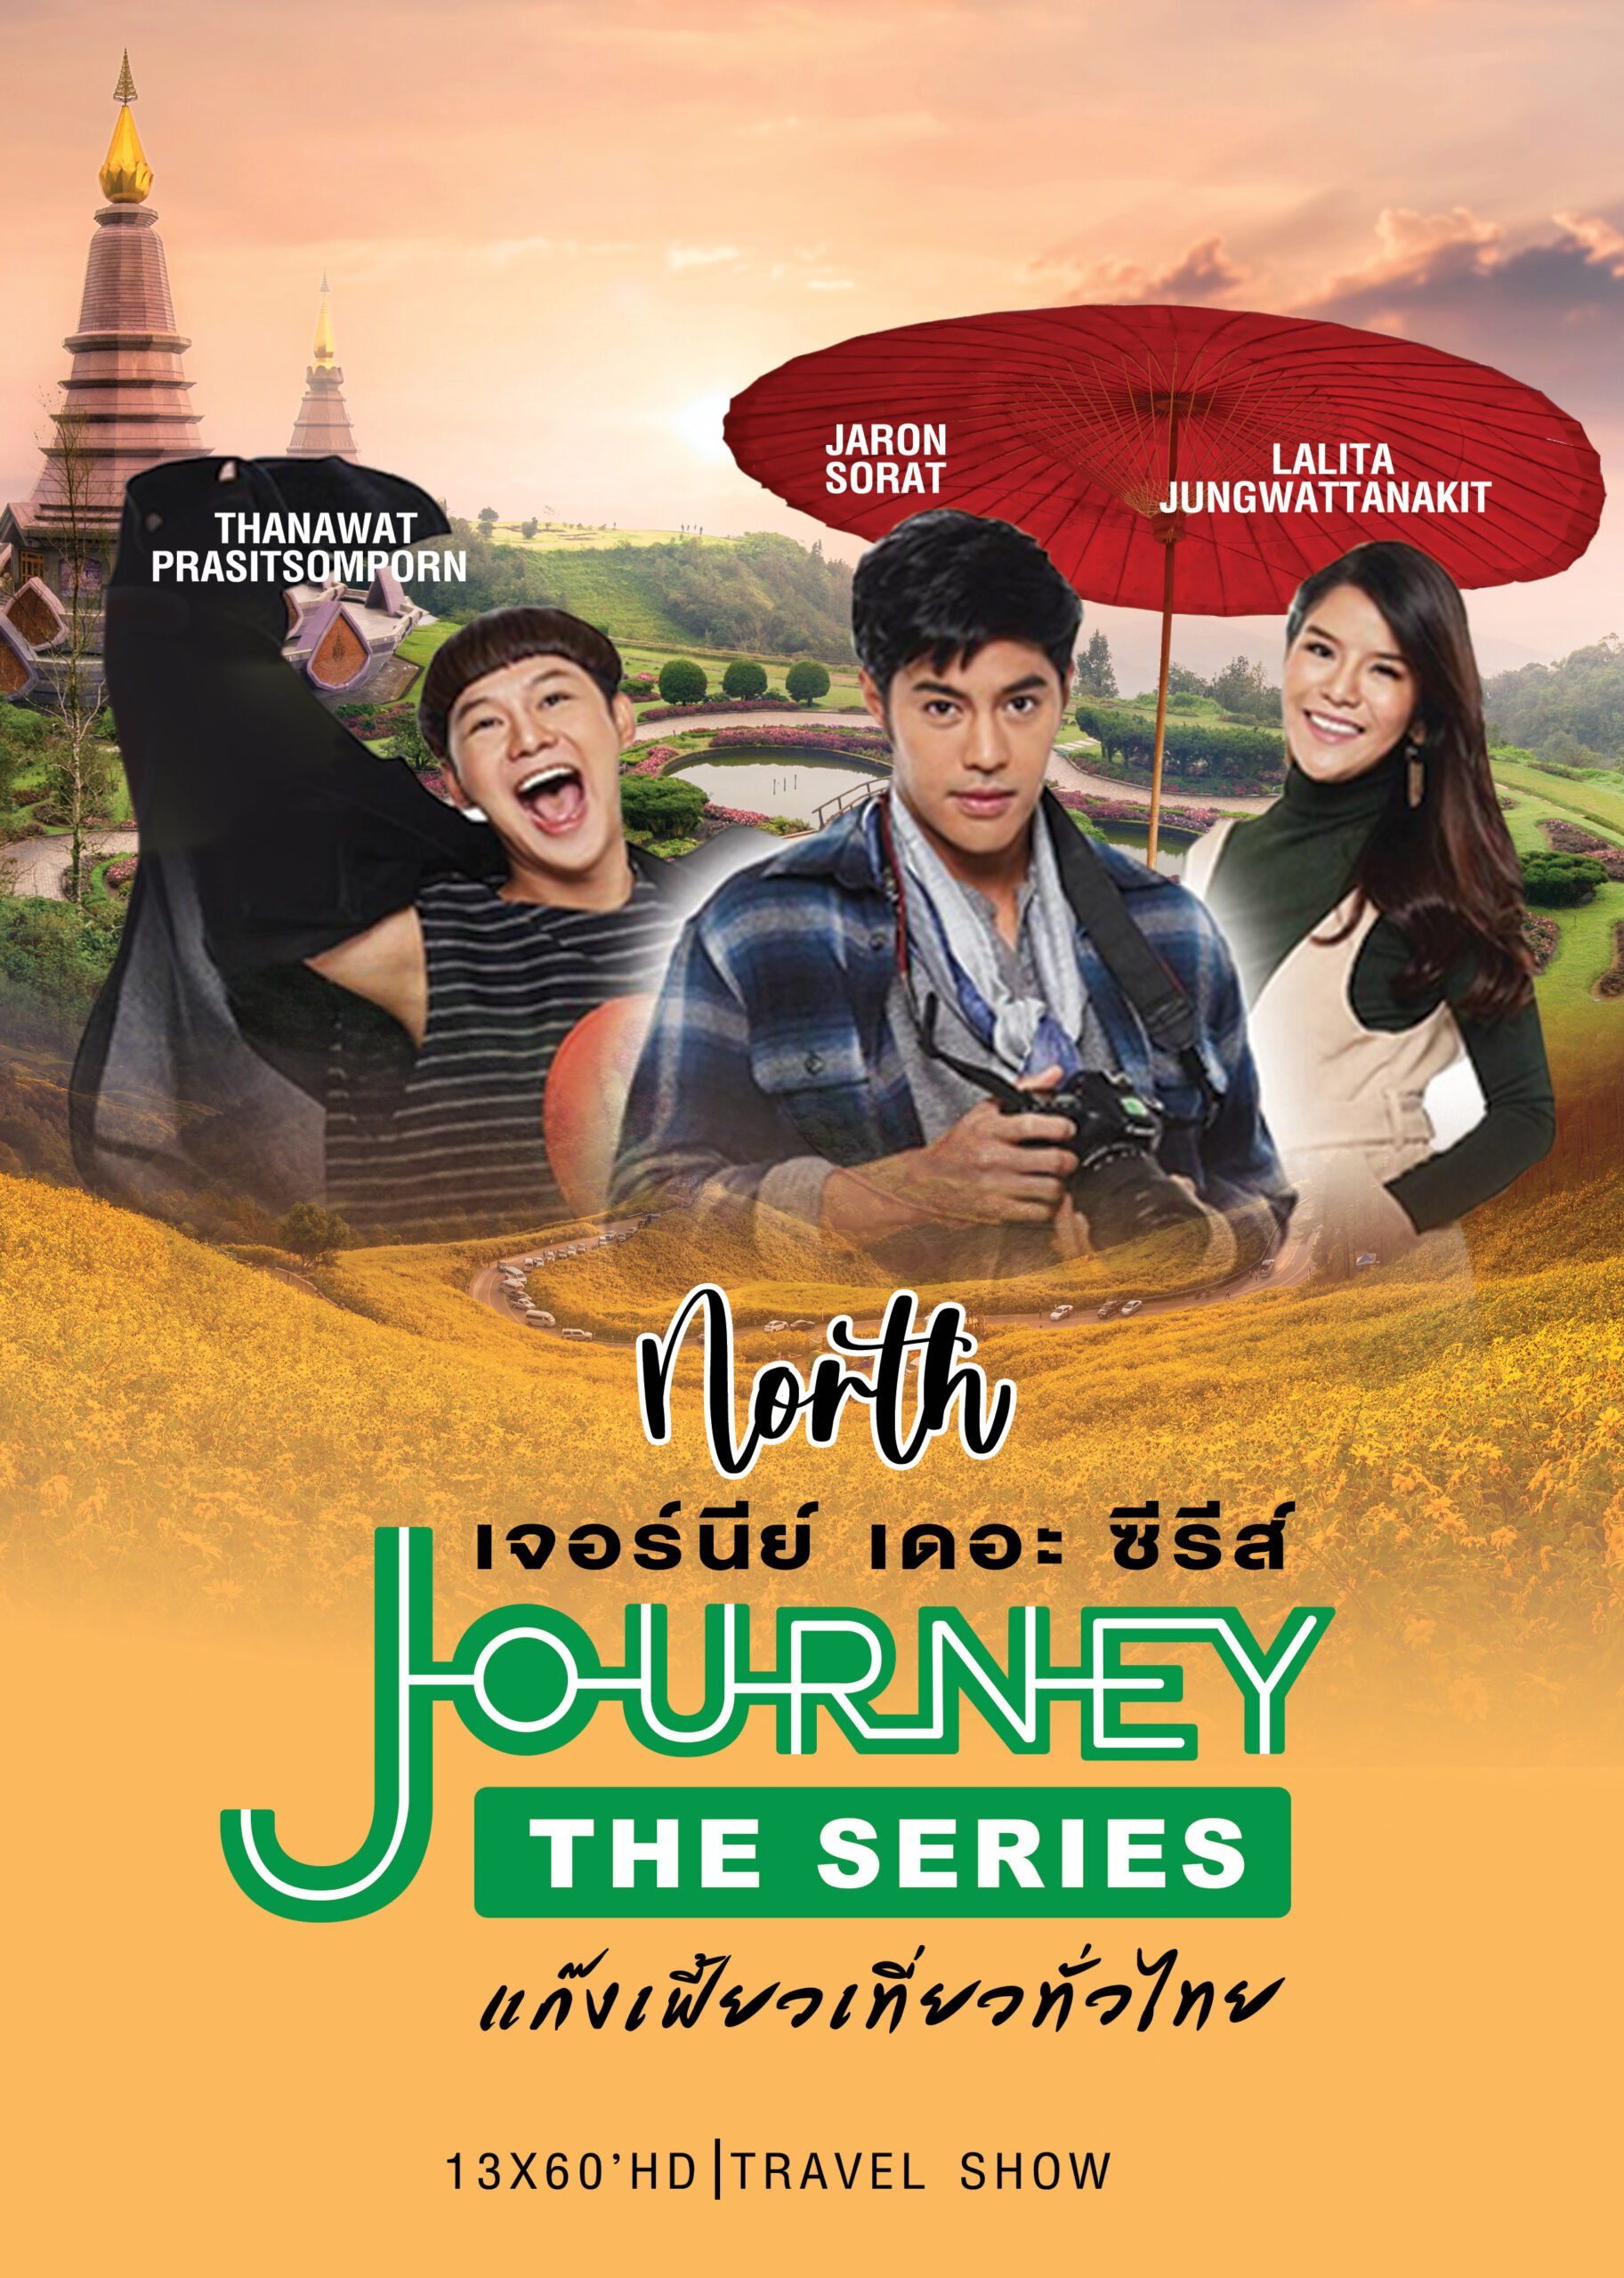 Journey-The-Series - North 4